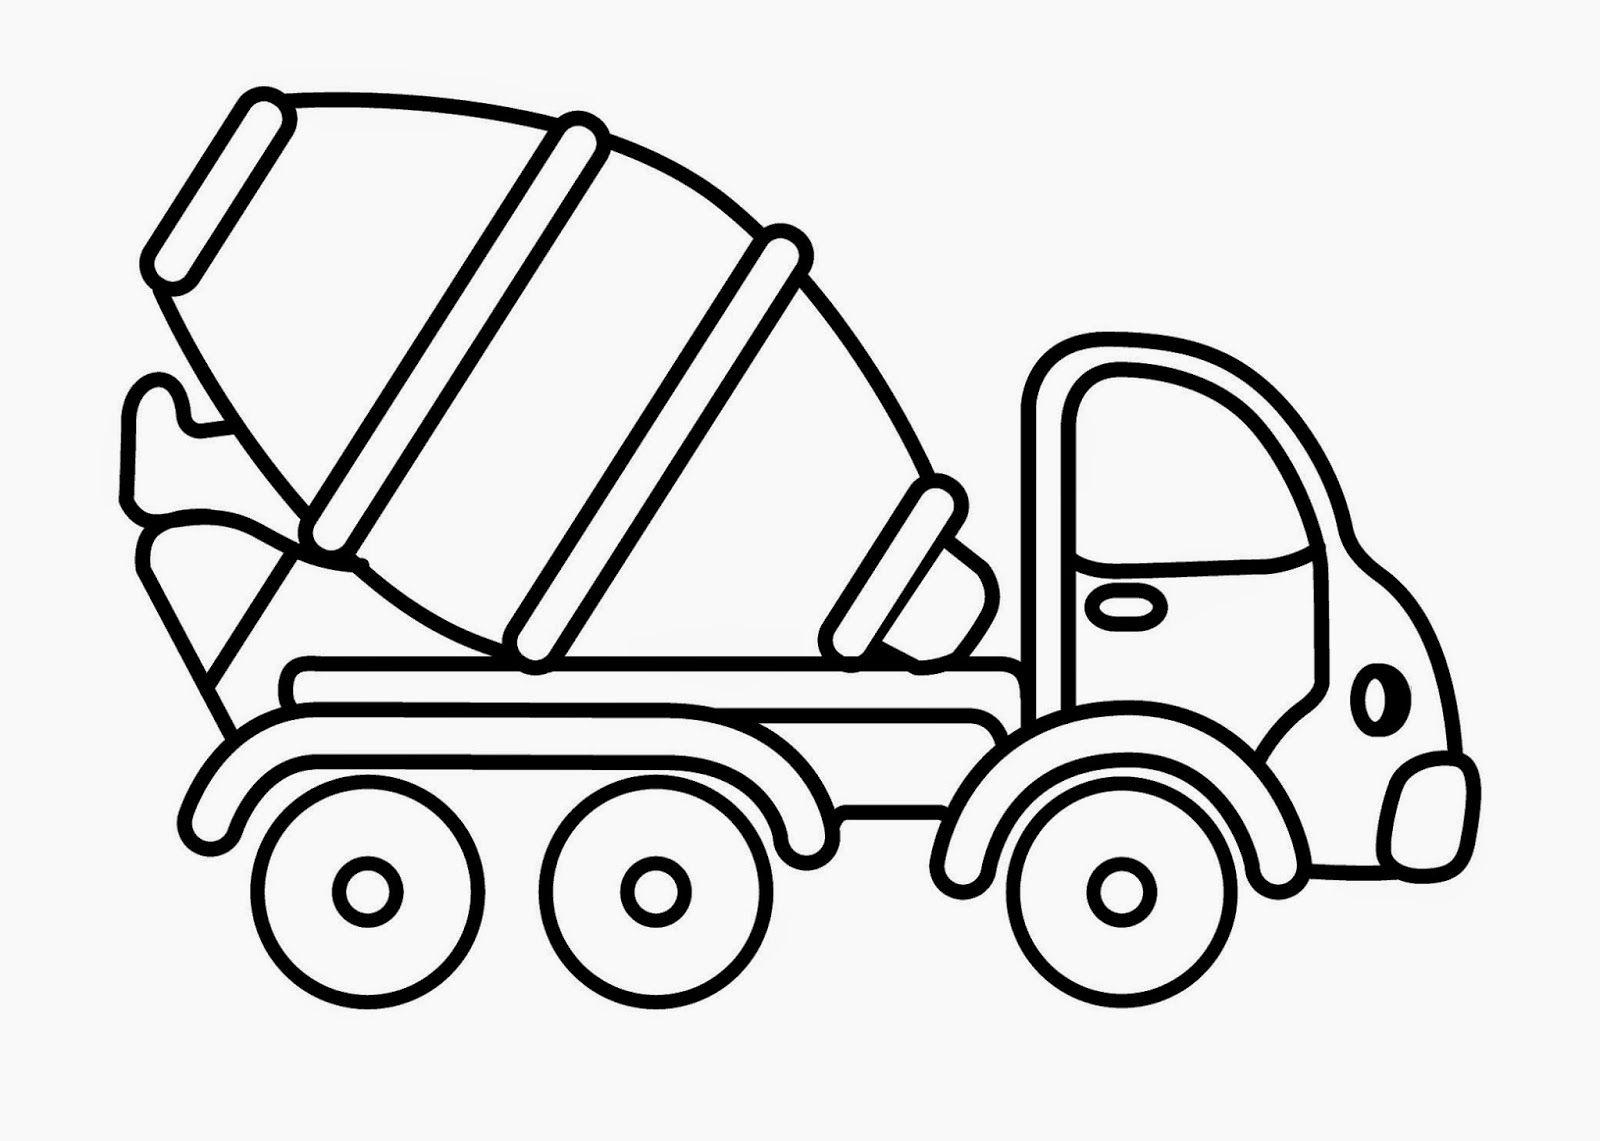 Kids Under 7: Vehicles Coloring Pages | Jeremiah bday | Pinterest ...